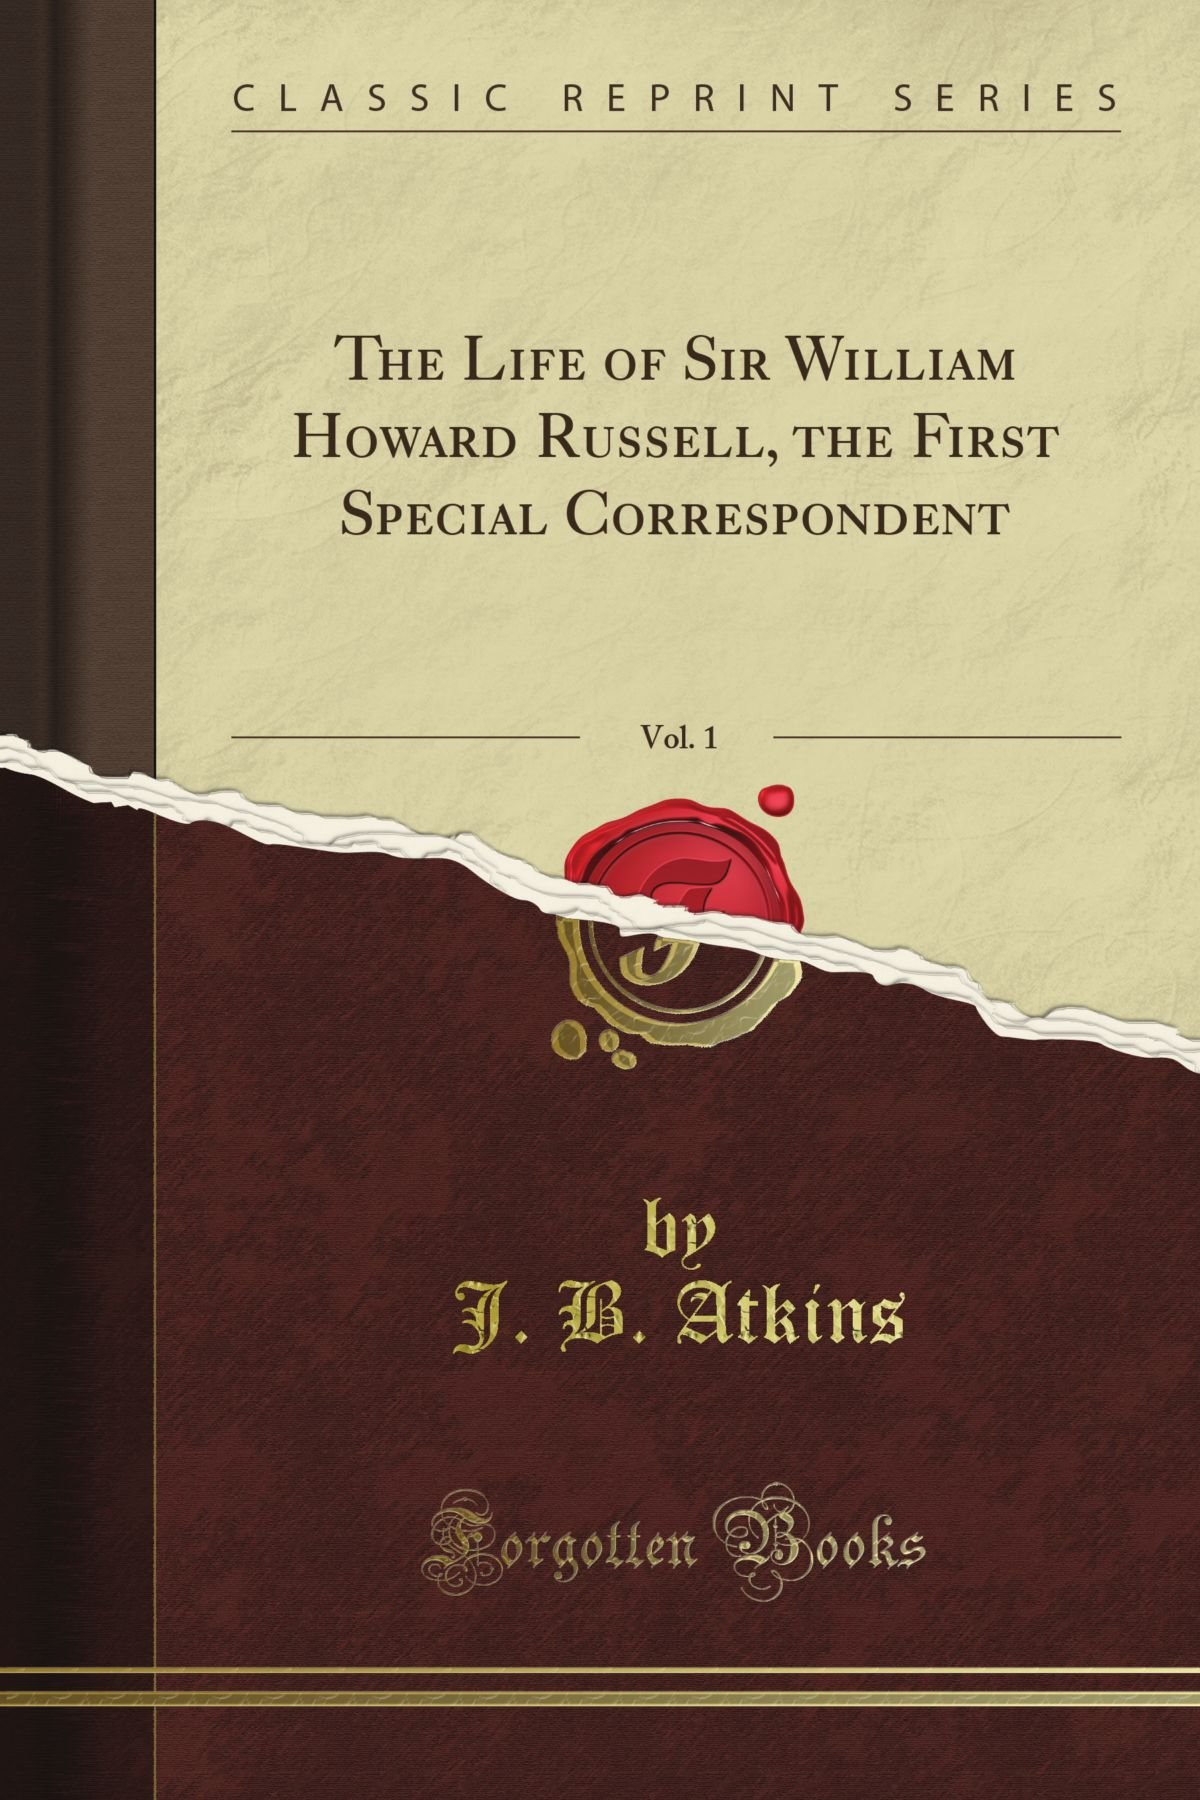 Read Online The Life of Sir William Howard Russell, the First Special Correspondent, Vol. 1 (Classic Reprint) ebook